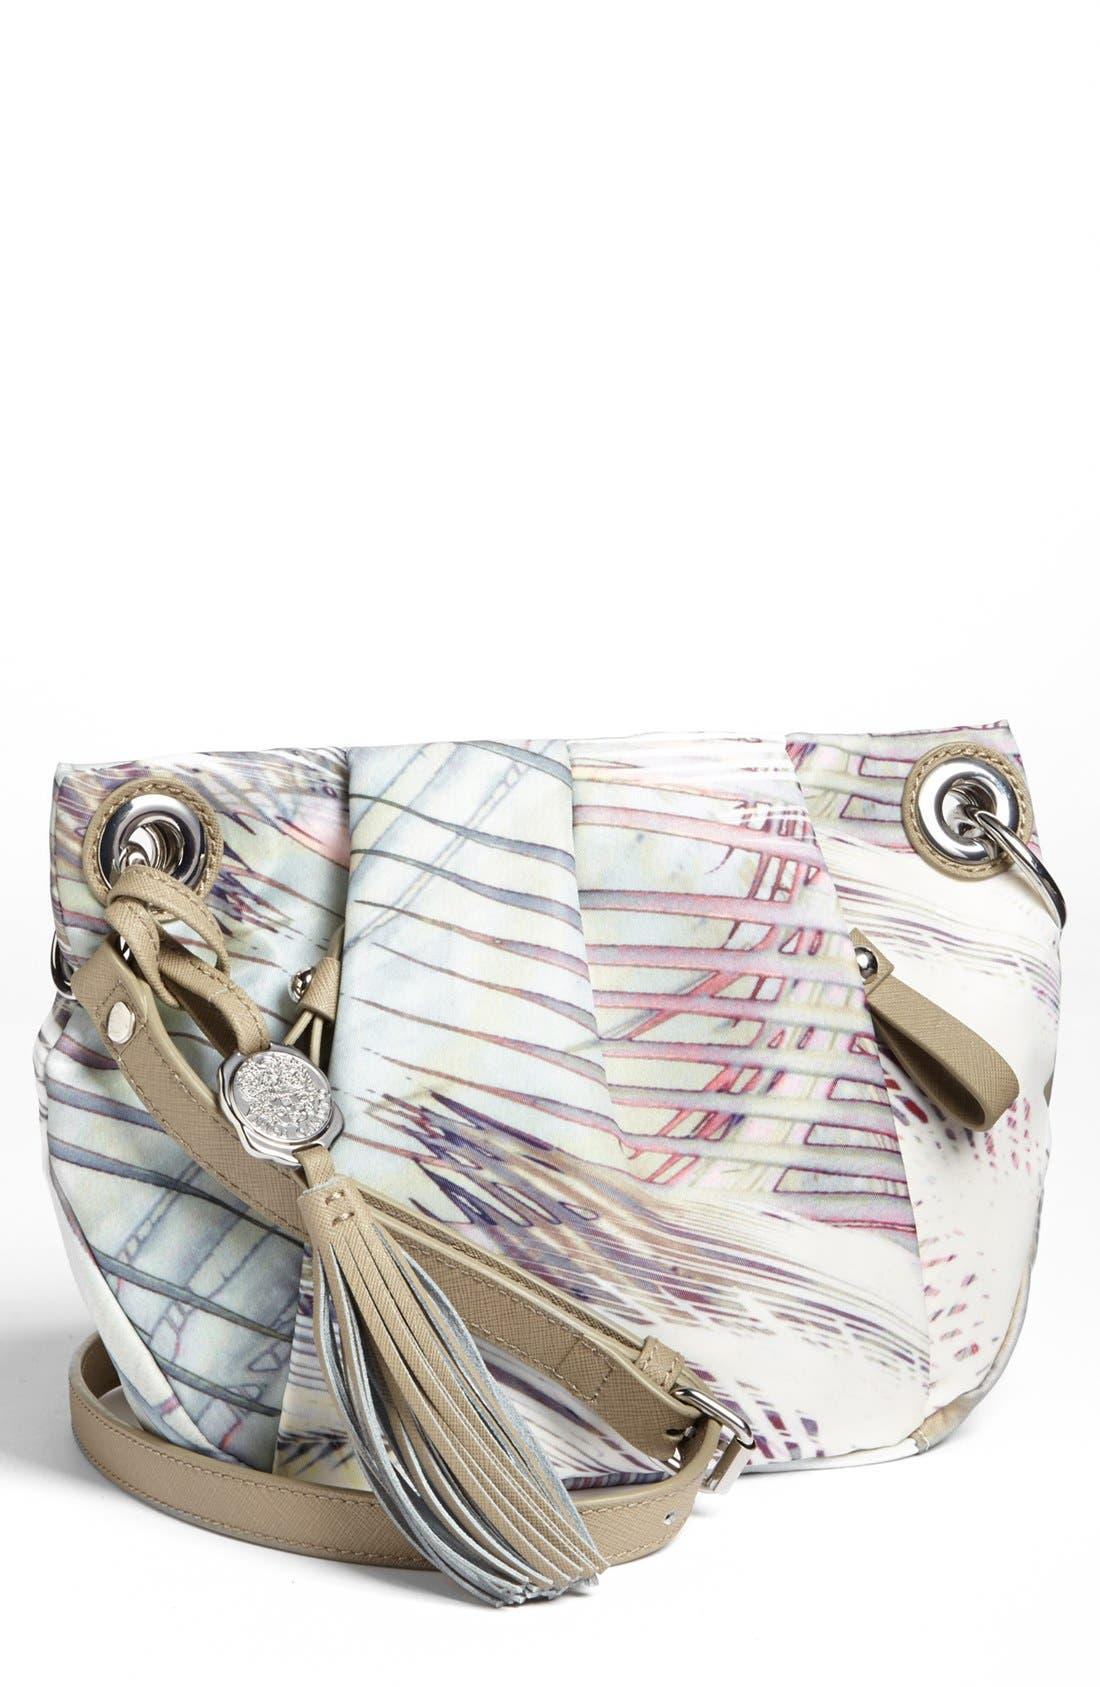 Alternate Image 1 Selected - Vince Camuto 'Cris' Nylon Crossbody Bag